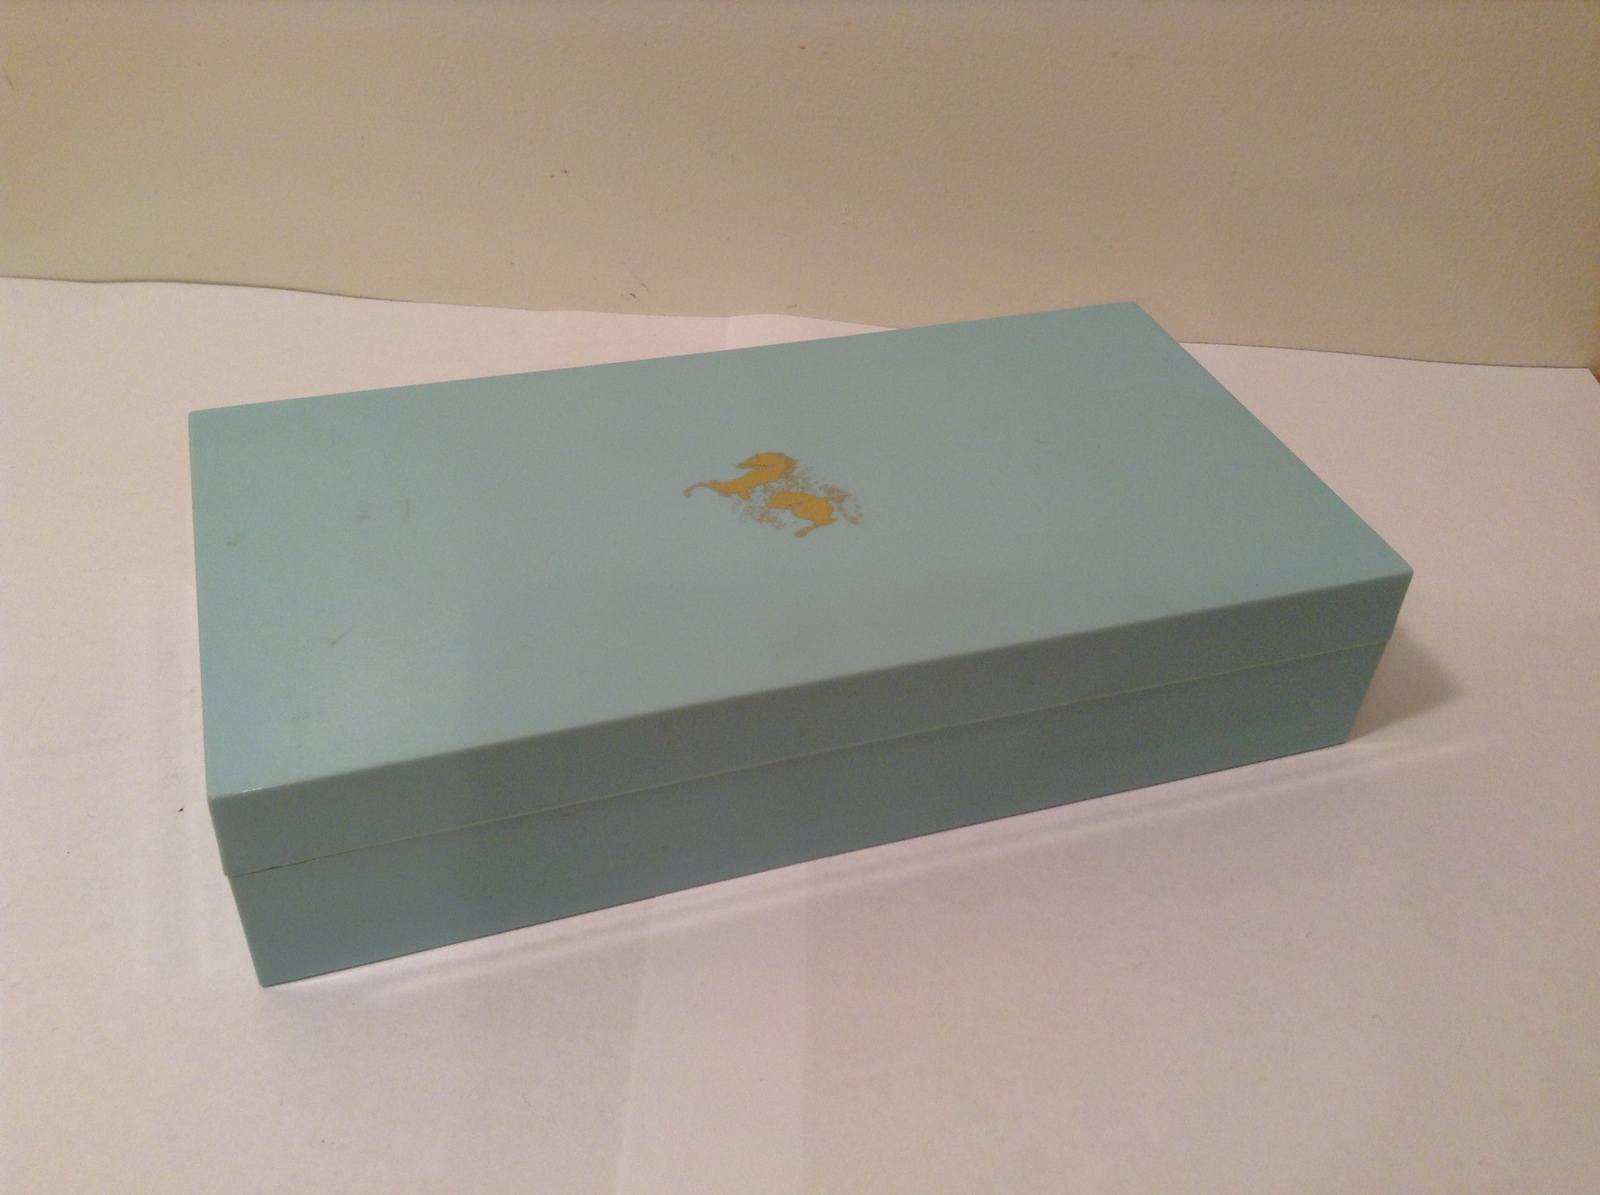 Vintage Elizabeth Arden Turquoise Plastic Box with Molded Gold Horse